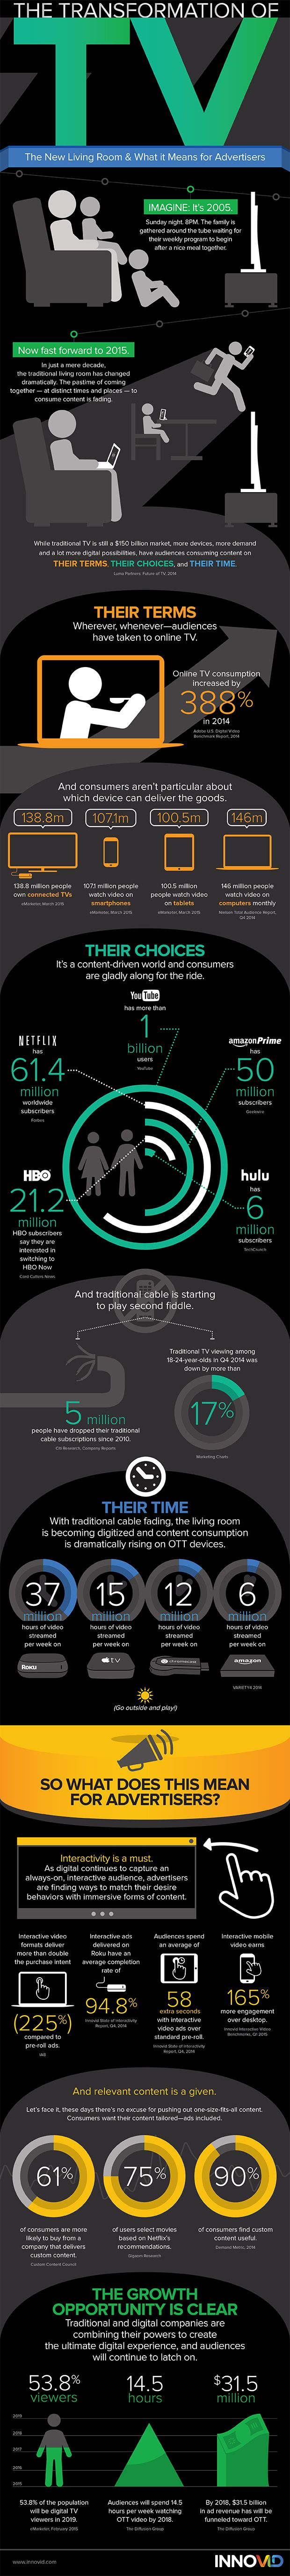 TV's evolution and screen time. #infographic